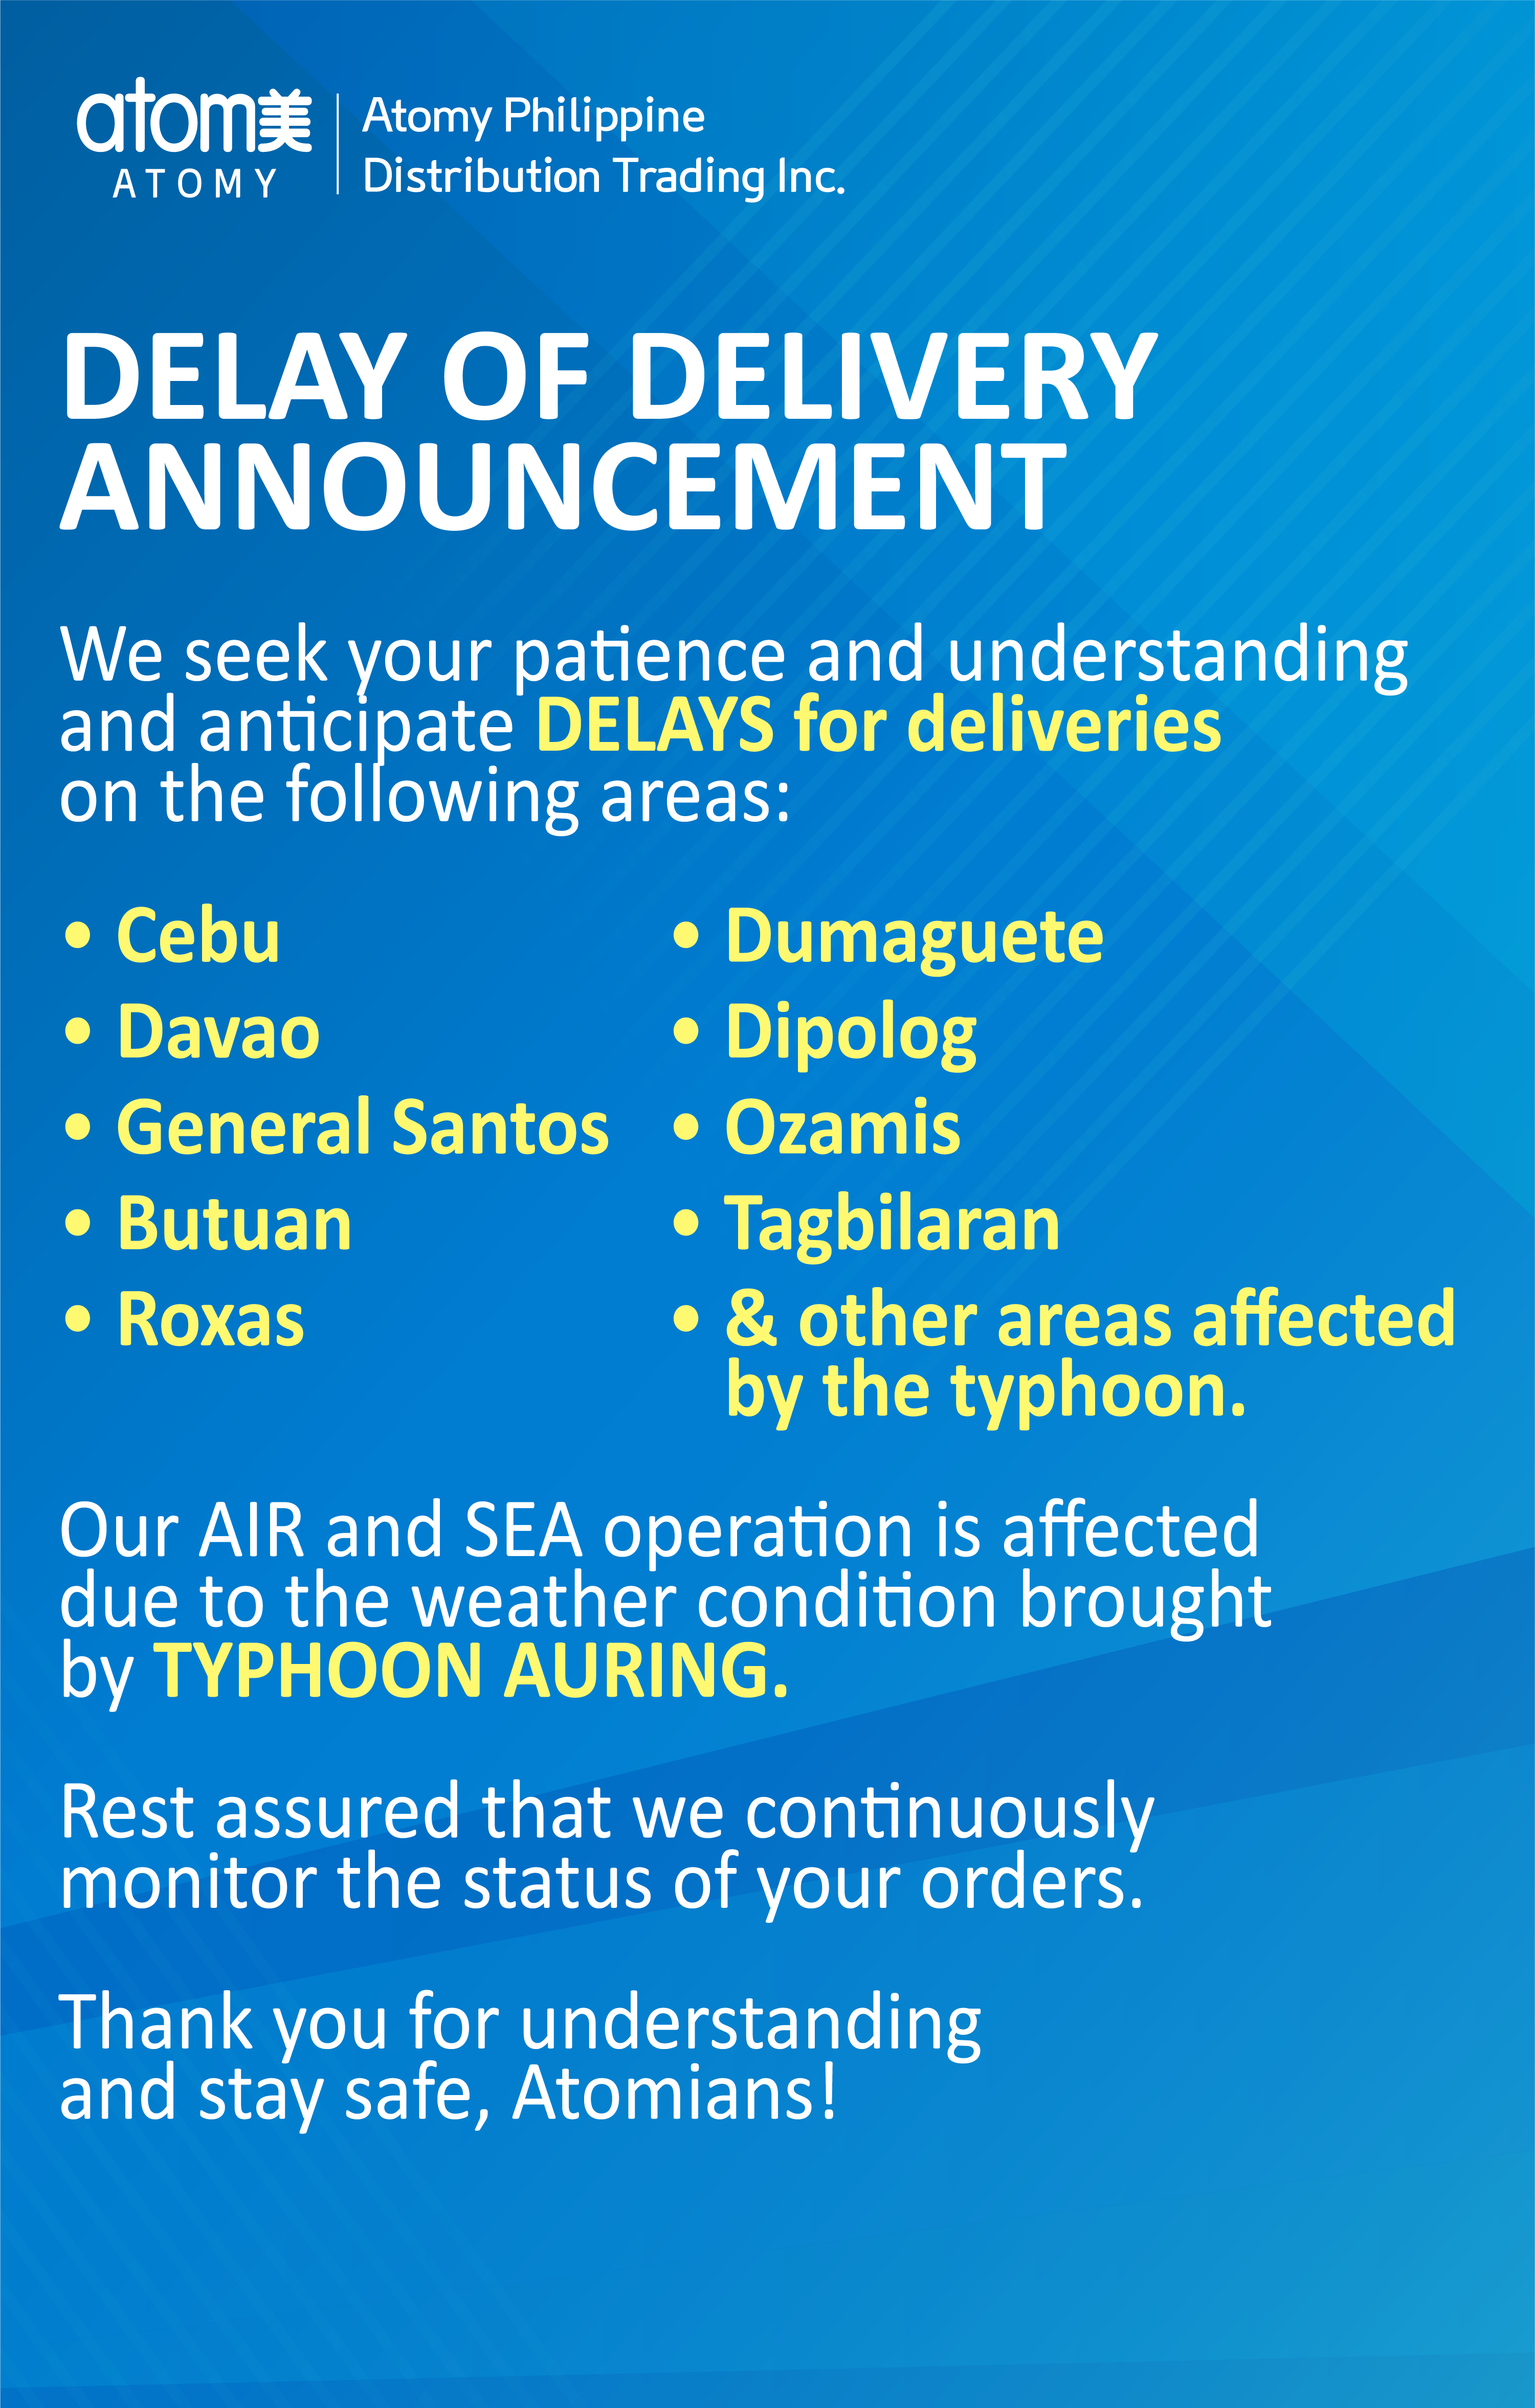 Delivery Announcement - February 22,2021 (Typhoon Auring)